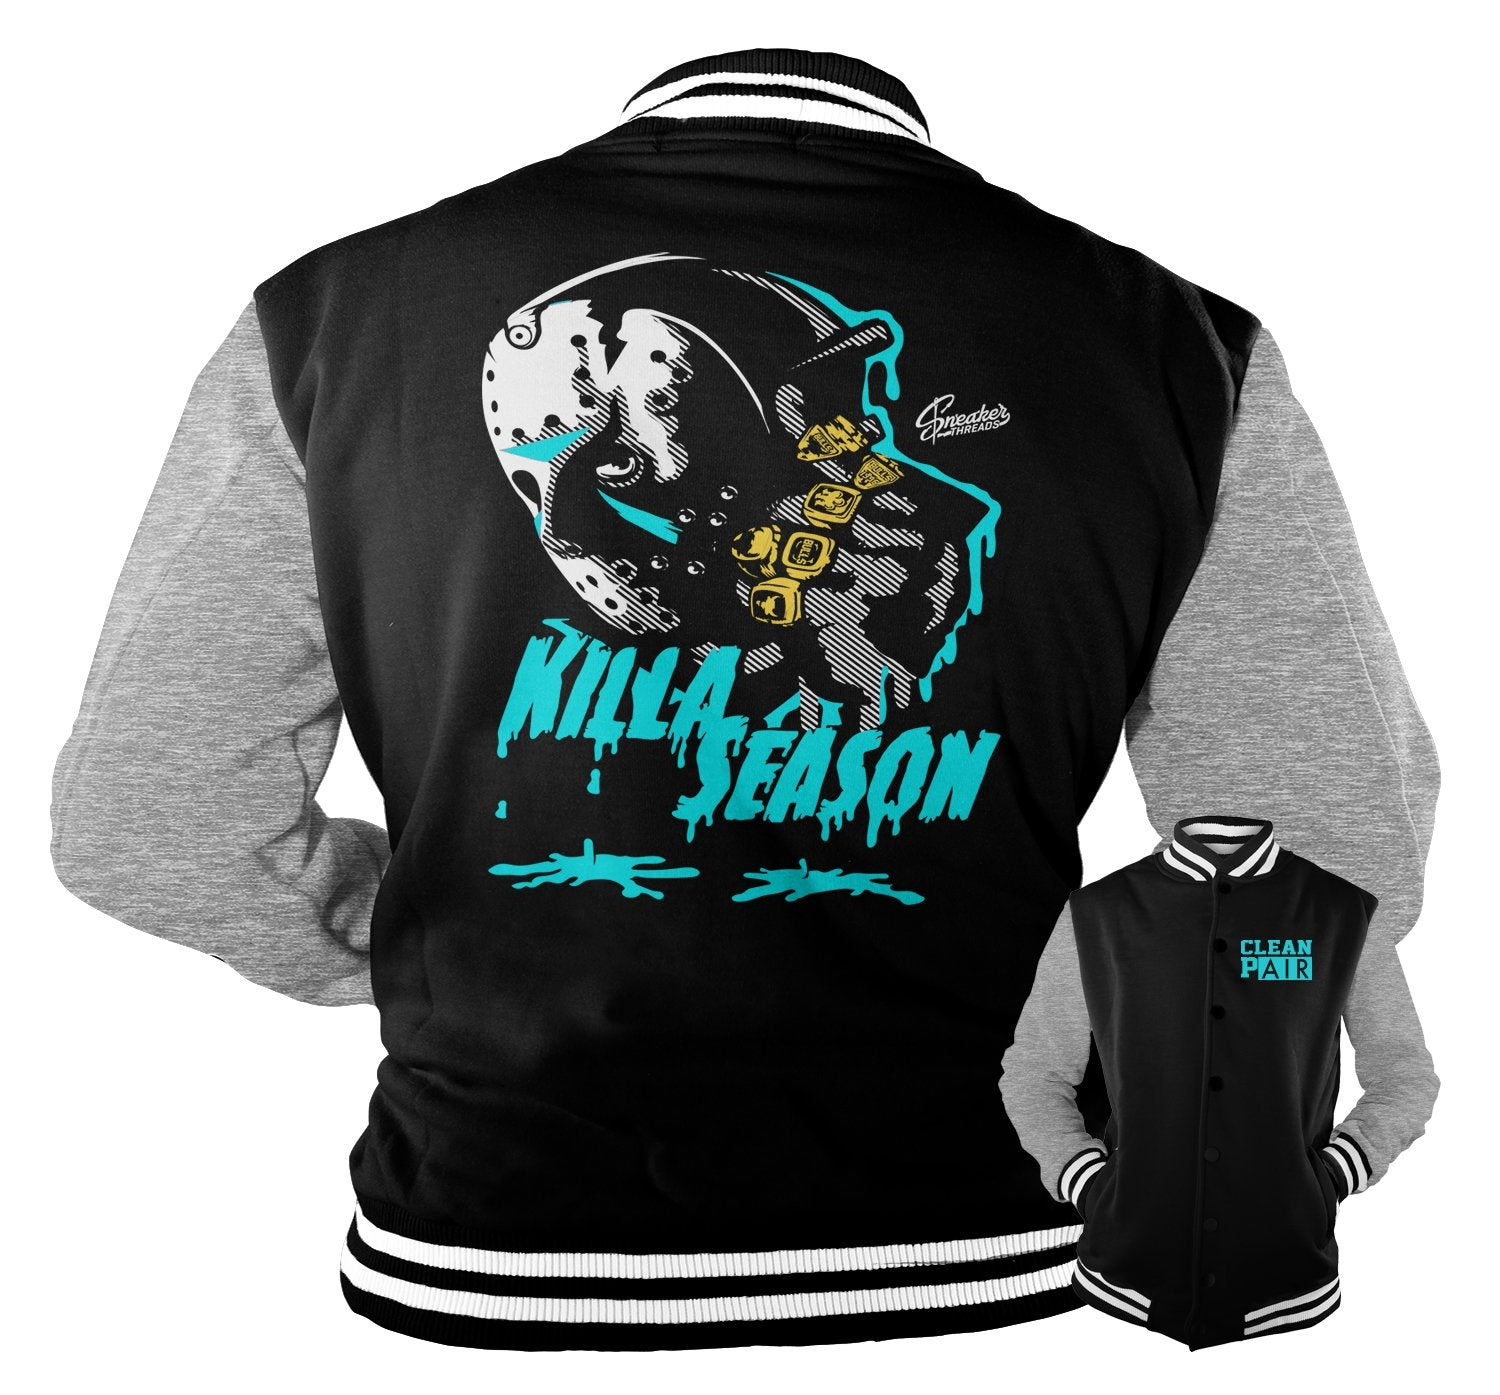 Varsity jackets created to match perfect with the Jordan 5 sneakers